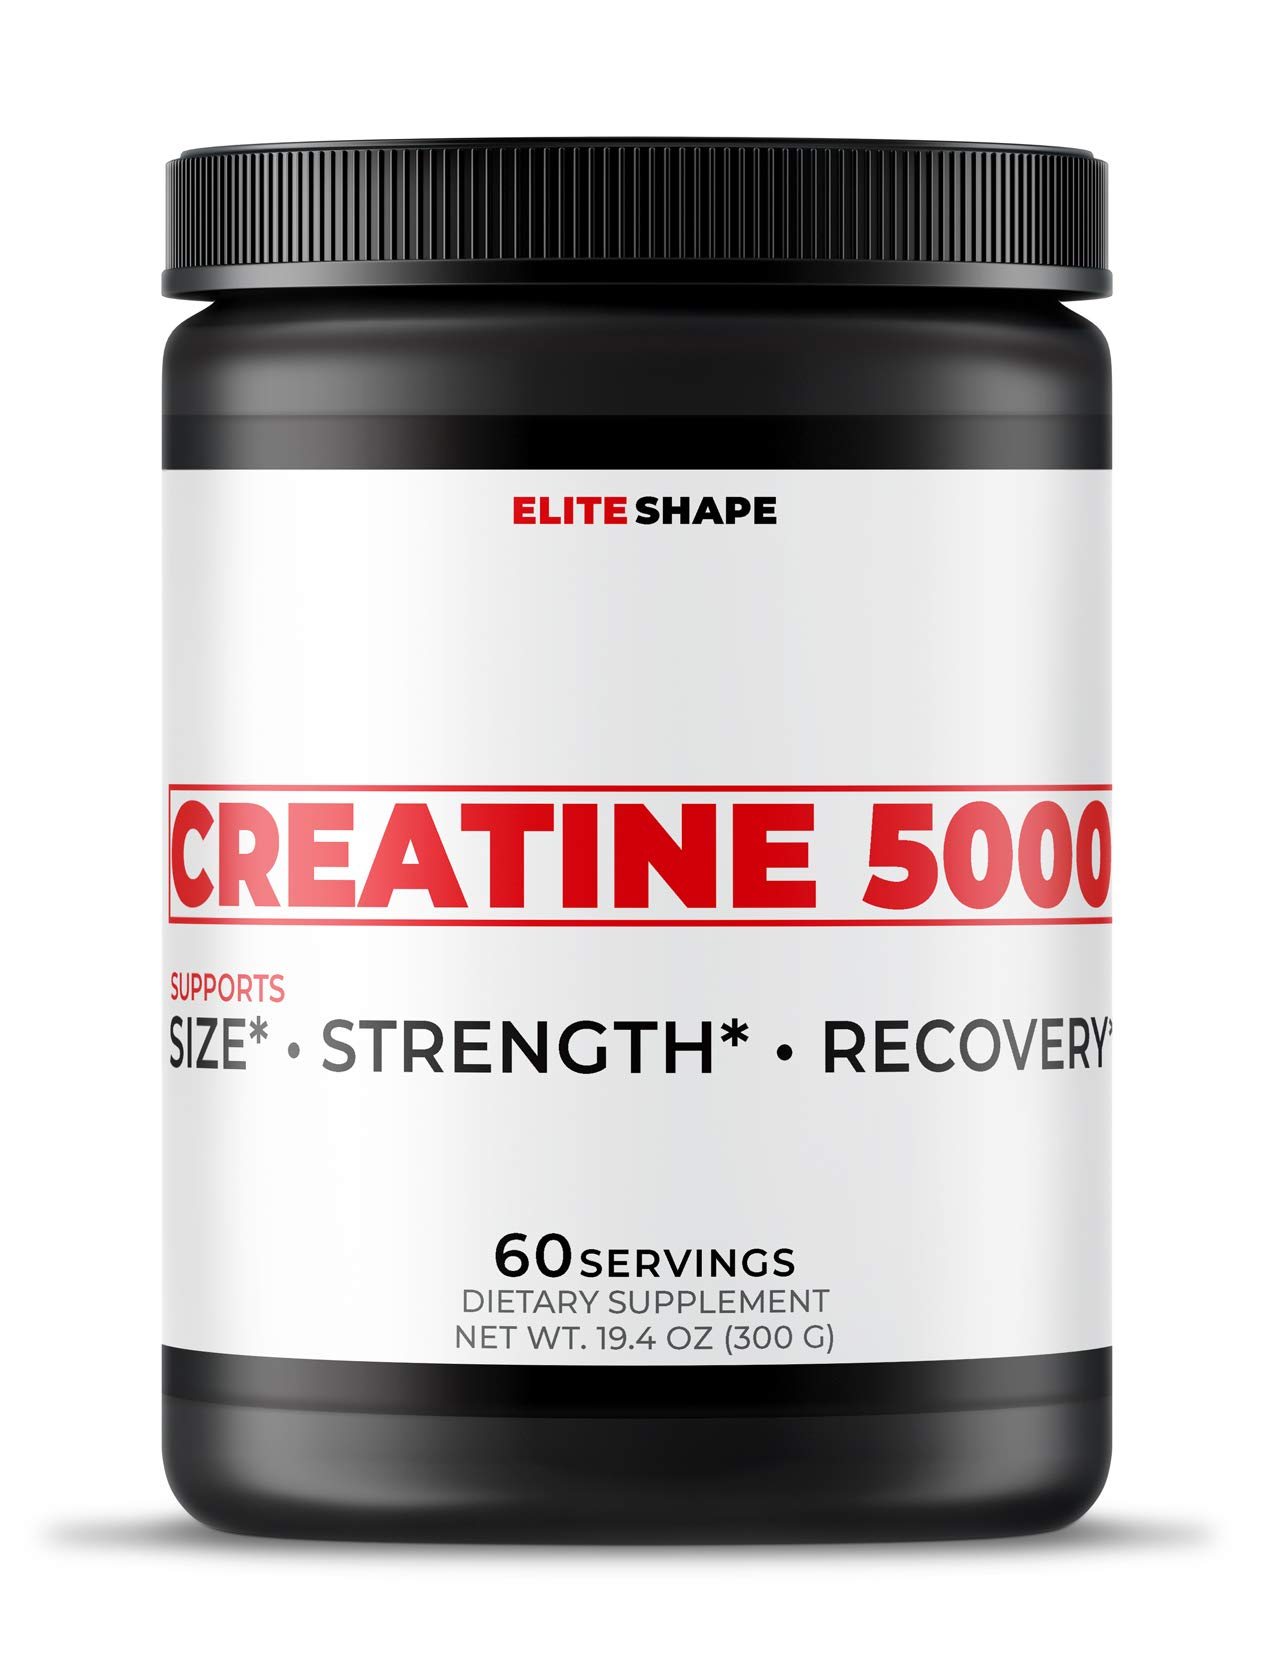 Creatine 5000 by Elite Shape | Sports Nutrition Dietary Supplement | Increase Muscle Growth and Strength | Pure Creatine Monohydrate | 60 Servings (3)